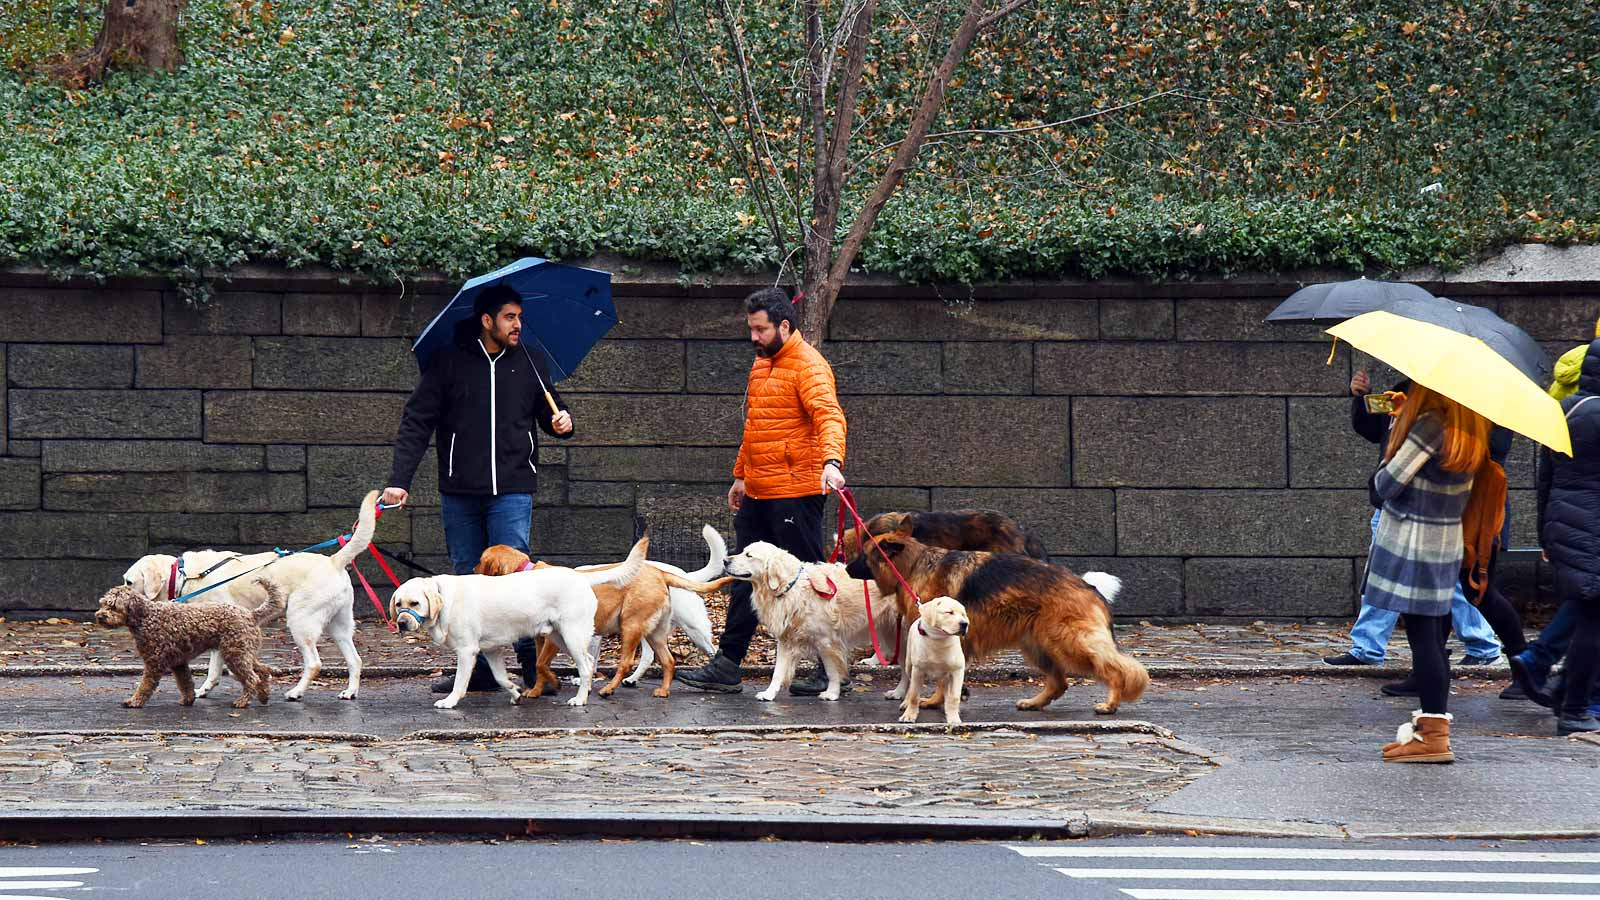 Dogs of New York City dog walkers